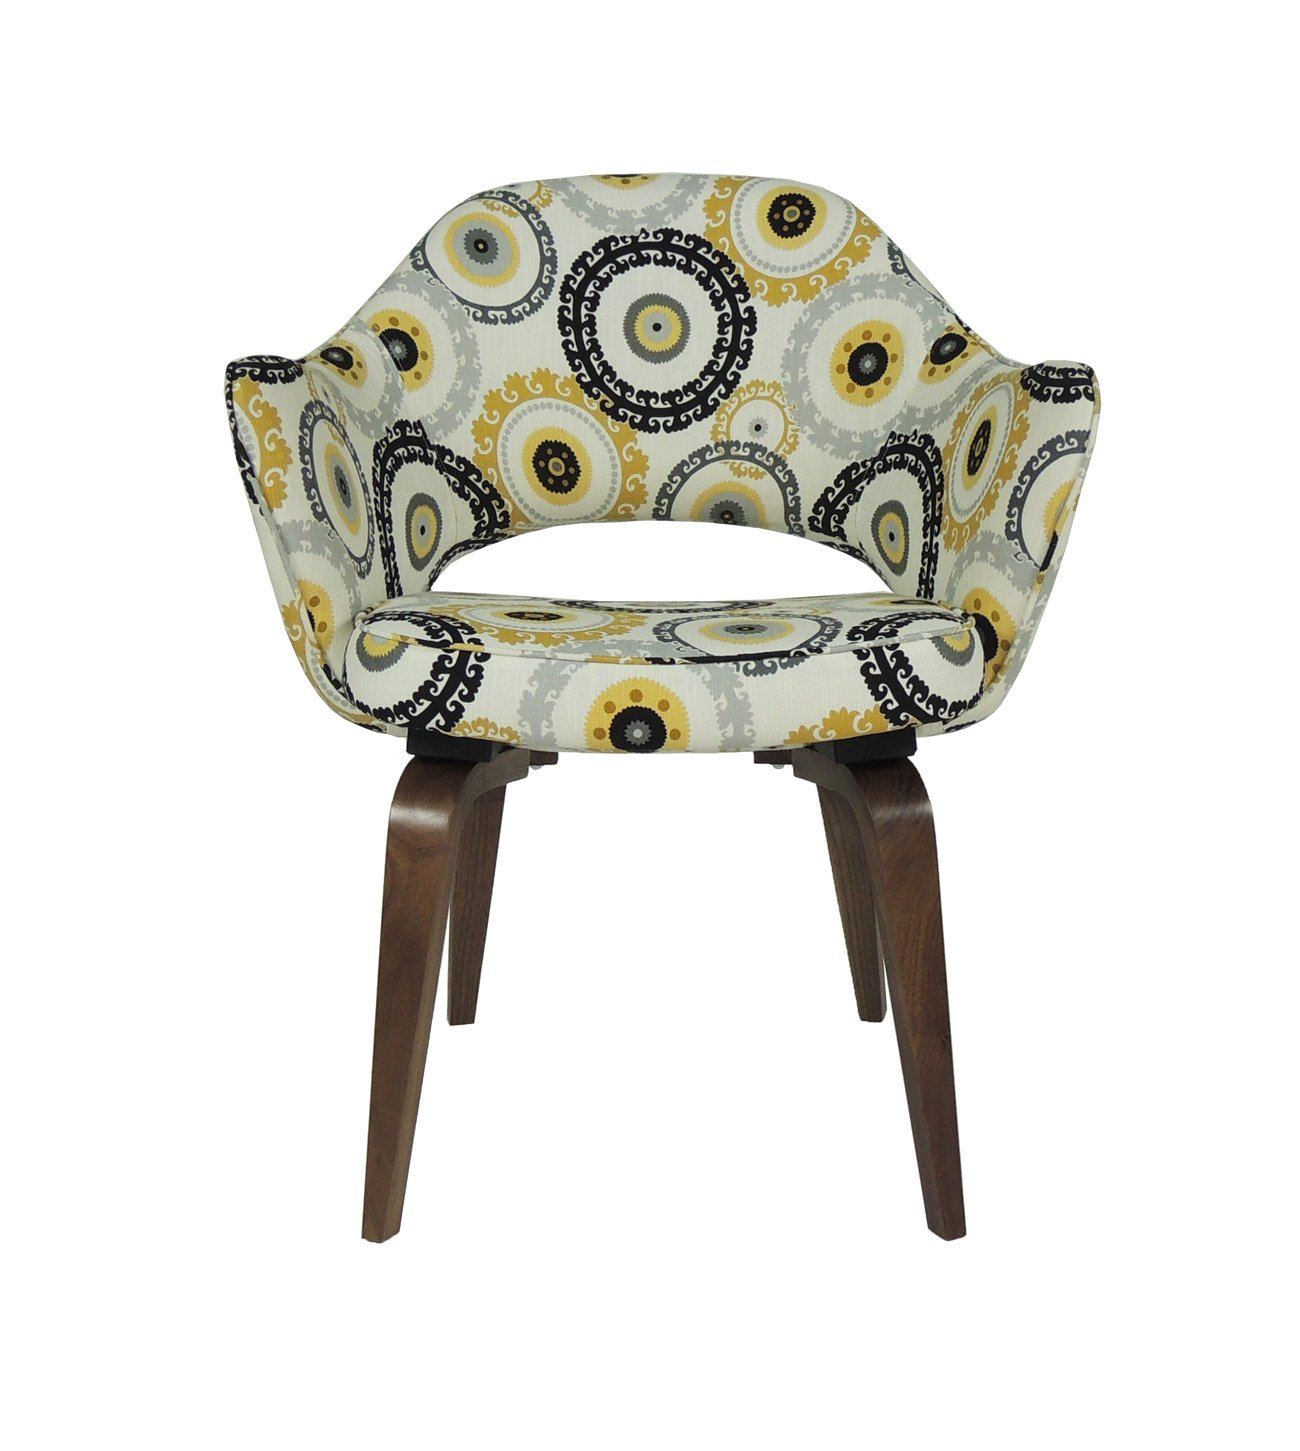 Saarinen wood-leg dining chair in designer fabric